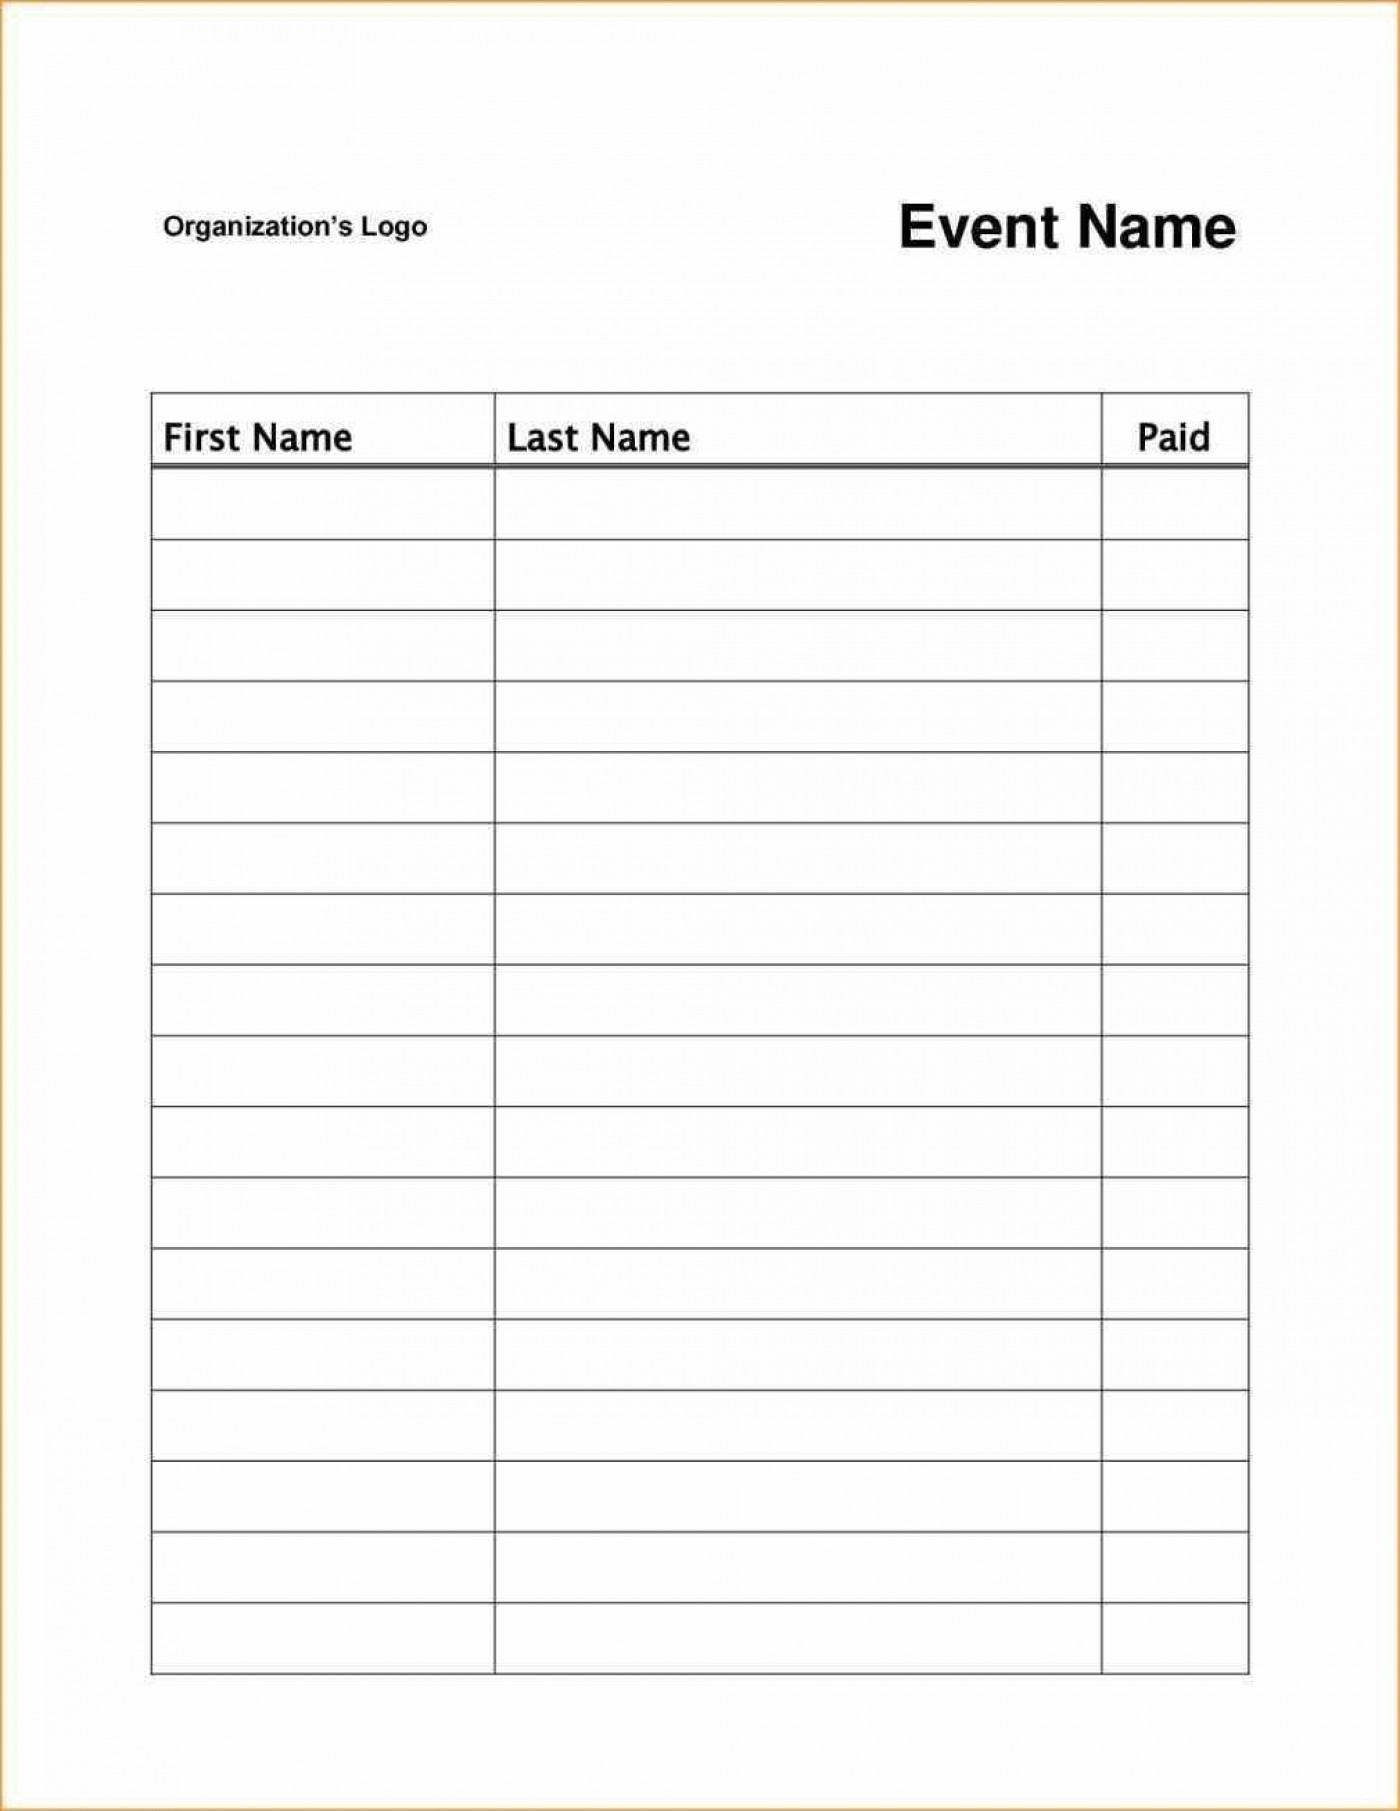 003 Breathtaking Pdf Sign Up Sheet Template High Resolution 1400